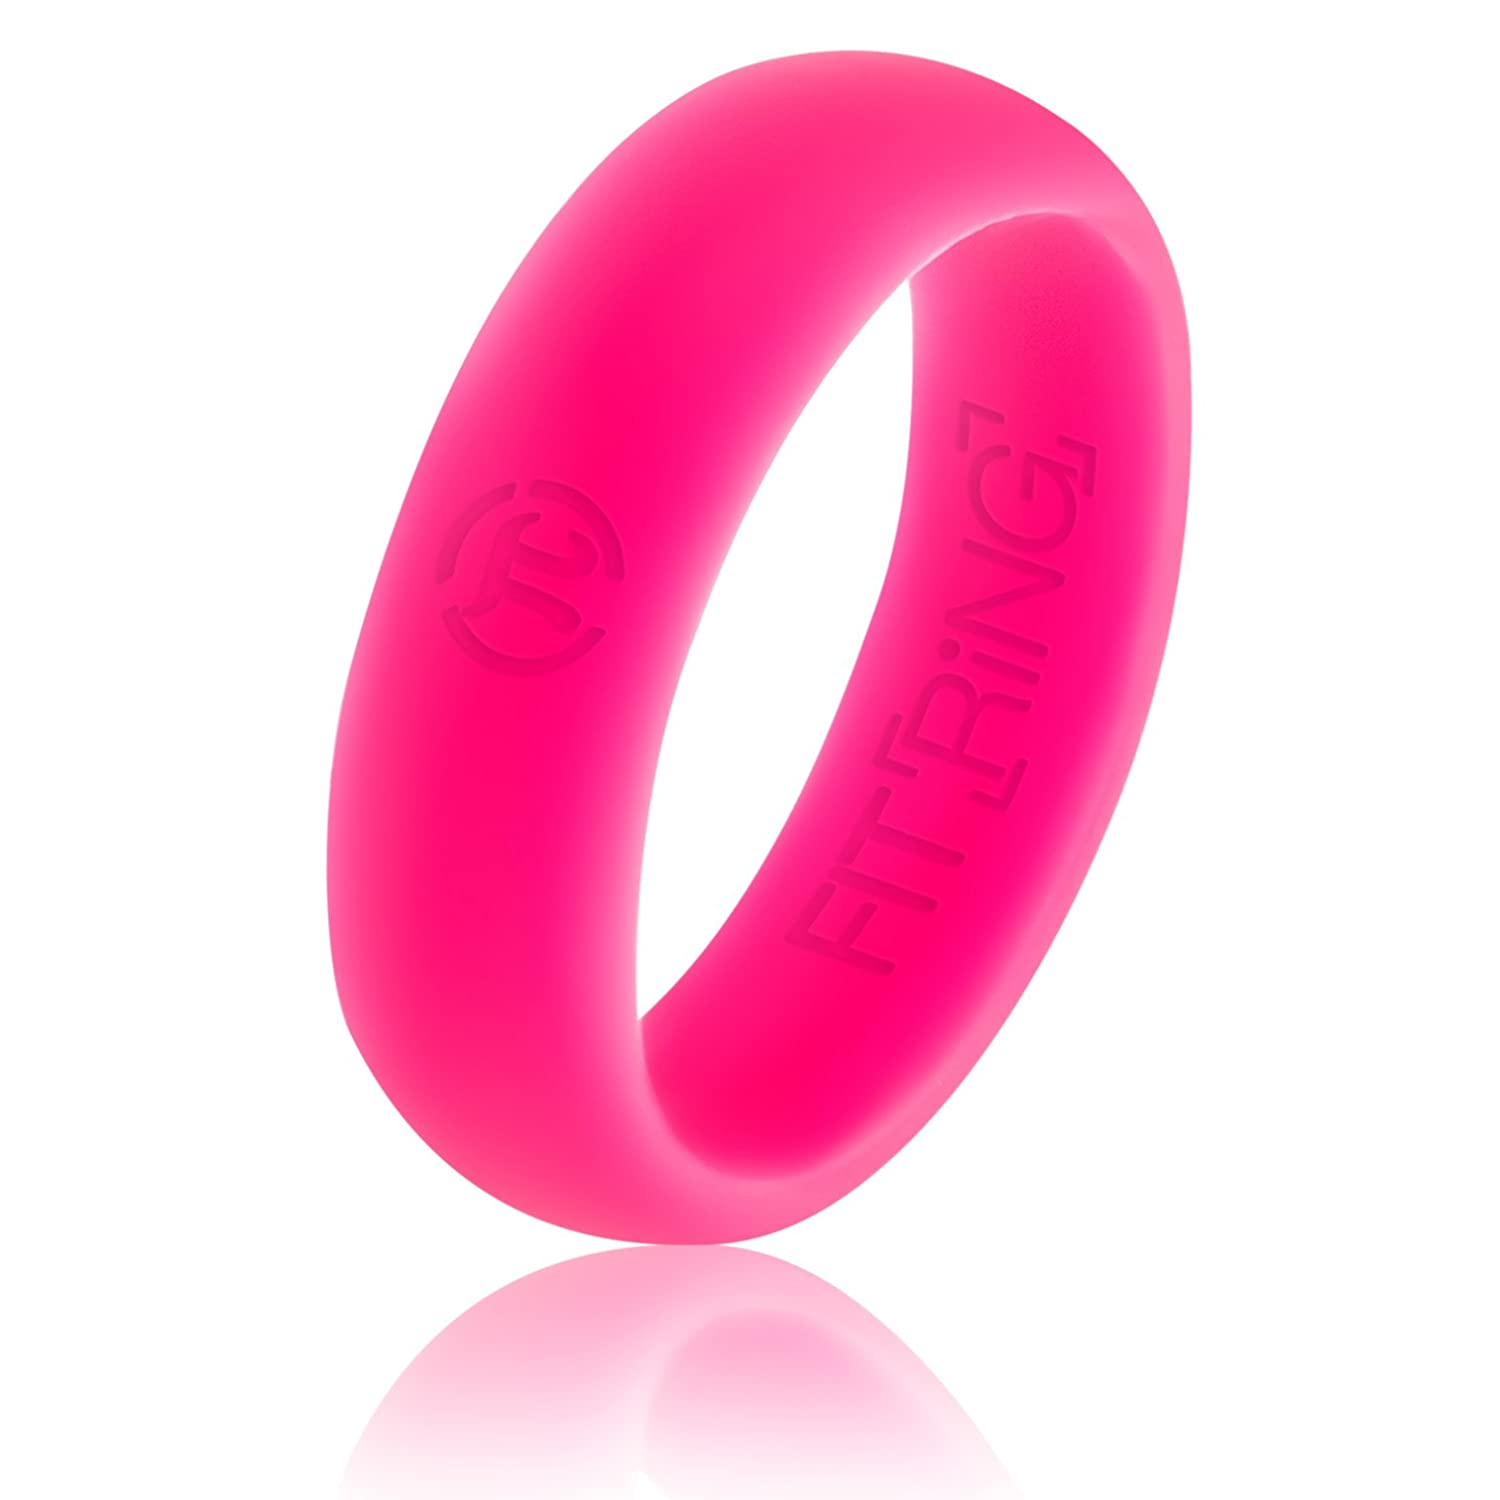 Amazon.com : Women\'s Silicone Wedding Ring by Fit Ring Premium ...